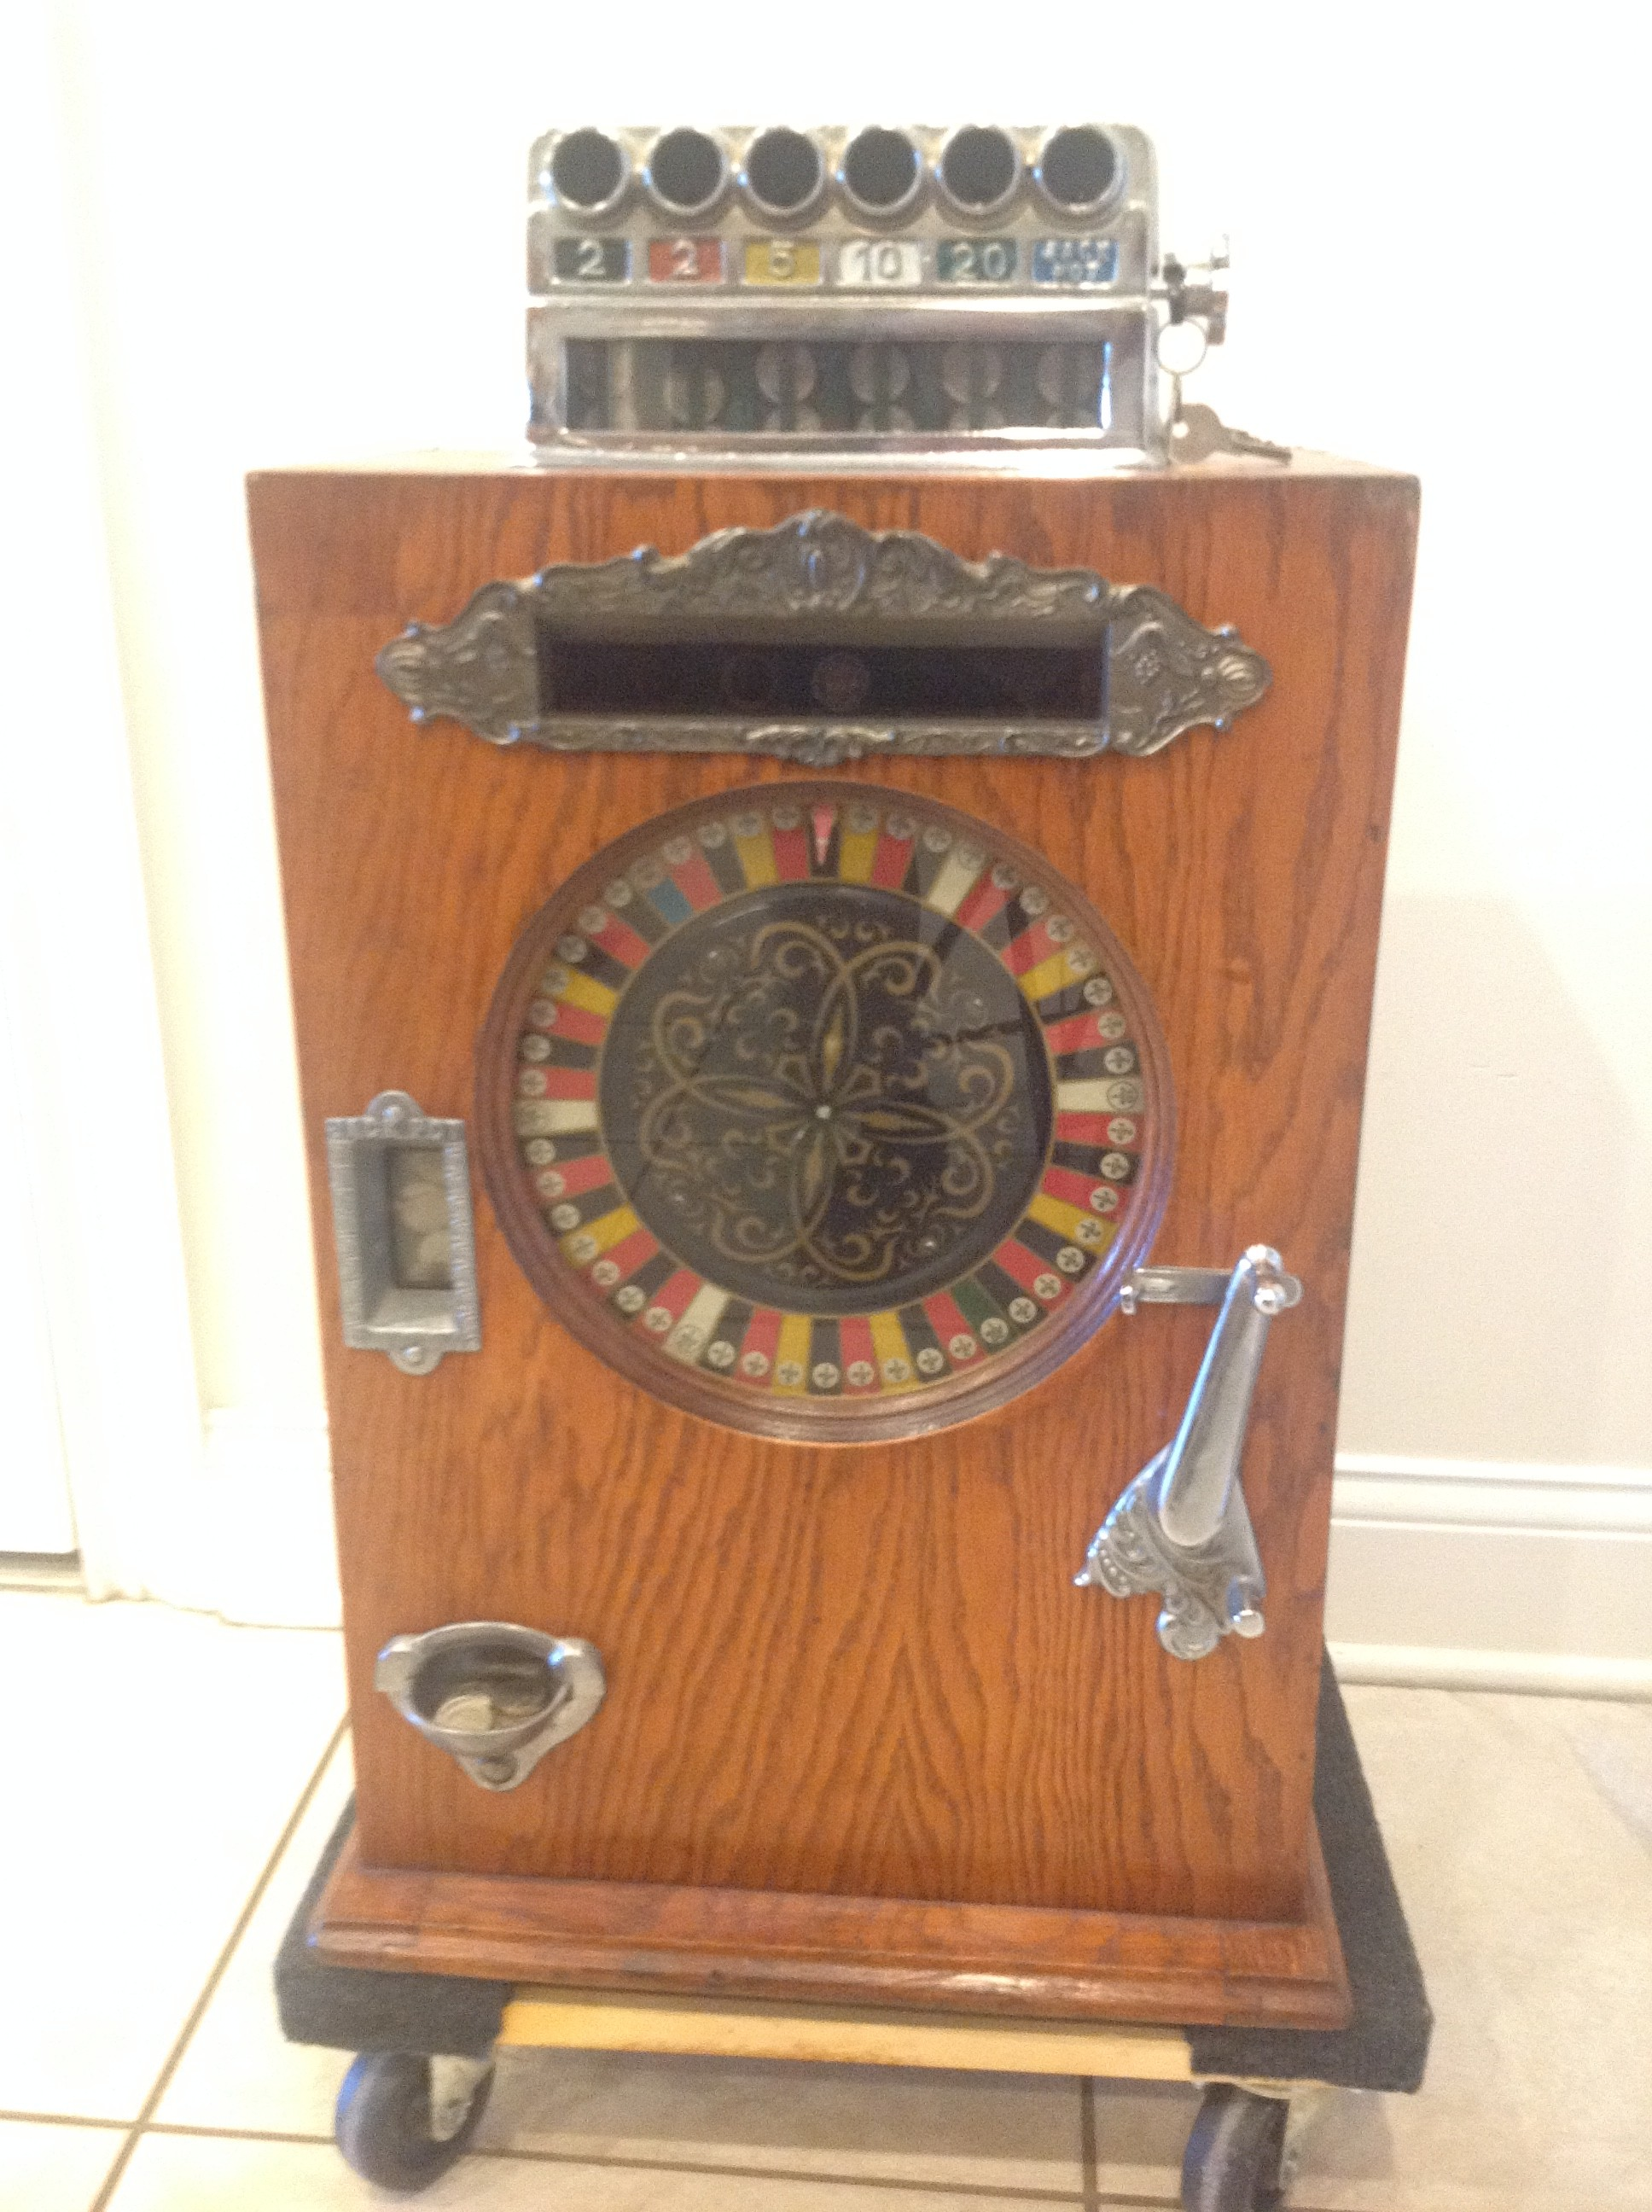 Watling Large Single Wheel Slot Machine Gameroom Show